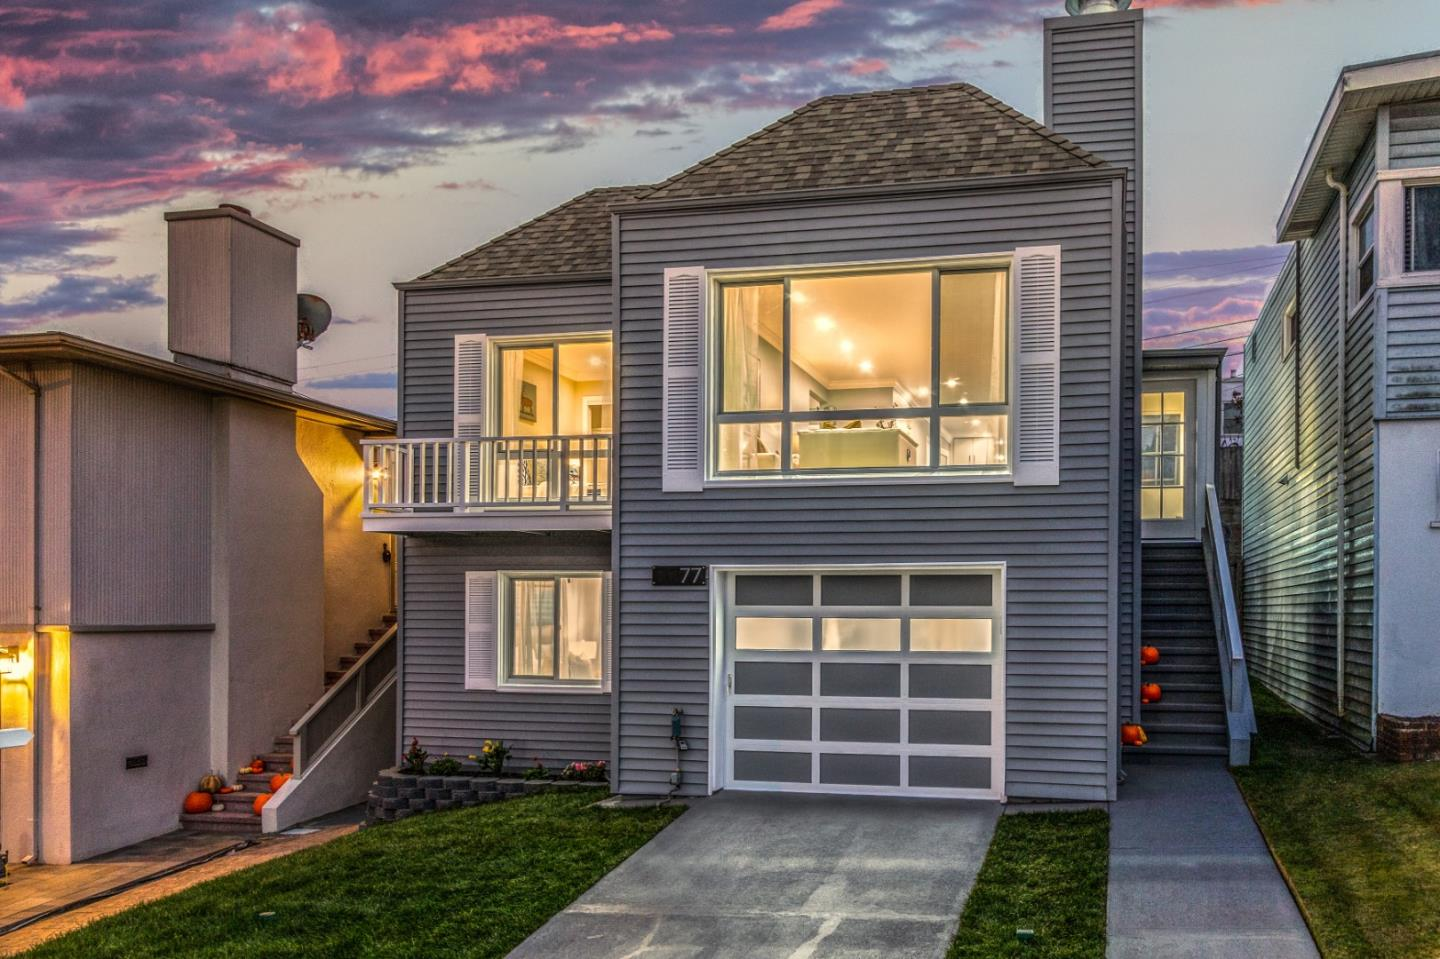 Meticulously remodeled w stunning hi-end finishes. 2019-2020 infrastructure upgrades: 200-amp electrical upgrade, whole house re-wiring, LED recessed lights, Argon dual pane windows, CertainTeed Landmark 30-yr lifetime warranty roof, 220V EV charger, impressive backyard remodel deliver a turnkey home. Attn to details abound w modern aesthetics such as glass interior doors, barn doors, keyless entry locks, RING doorbell, NEST thermostat, smoke & C02 detectors, contemporary door knobs, USB-powered outlets, polished chrome lighting & plumbing fixtures incl rain showers, Toto toilets, and designer tile work. A wine bar w built-in wine rack makes entertaining a breeze. Relax in the sumptuous backyard w all-new redwood fencing, deck & terraced areas. Be enchanted by the whimsical outdoor design w mushroom garden statues and outdoor solar lighting for your alfresco dining. Carrier furnace, Rheem 50-gal water heater, Chamberlain Belt Drive smart door garage door openers. Ext and int painting.